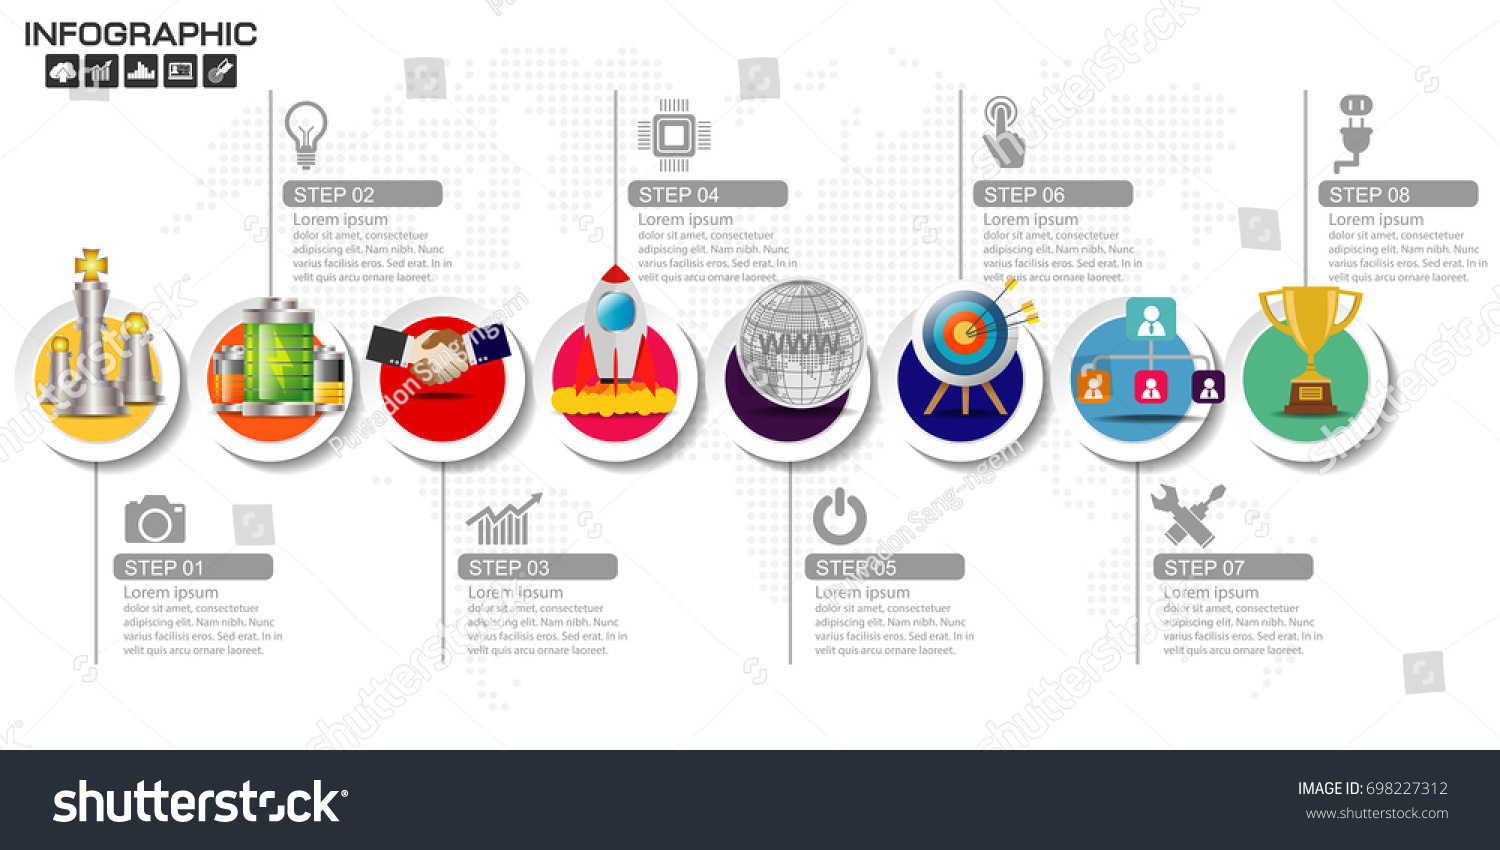 Business Steps Timeline Infographics Design Template Stock Vector Process Flow Diagram Website With 3 10 Options